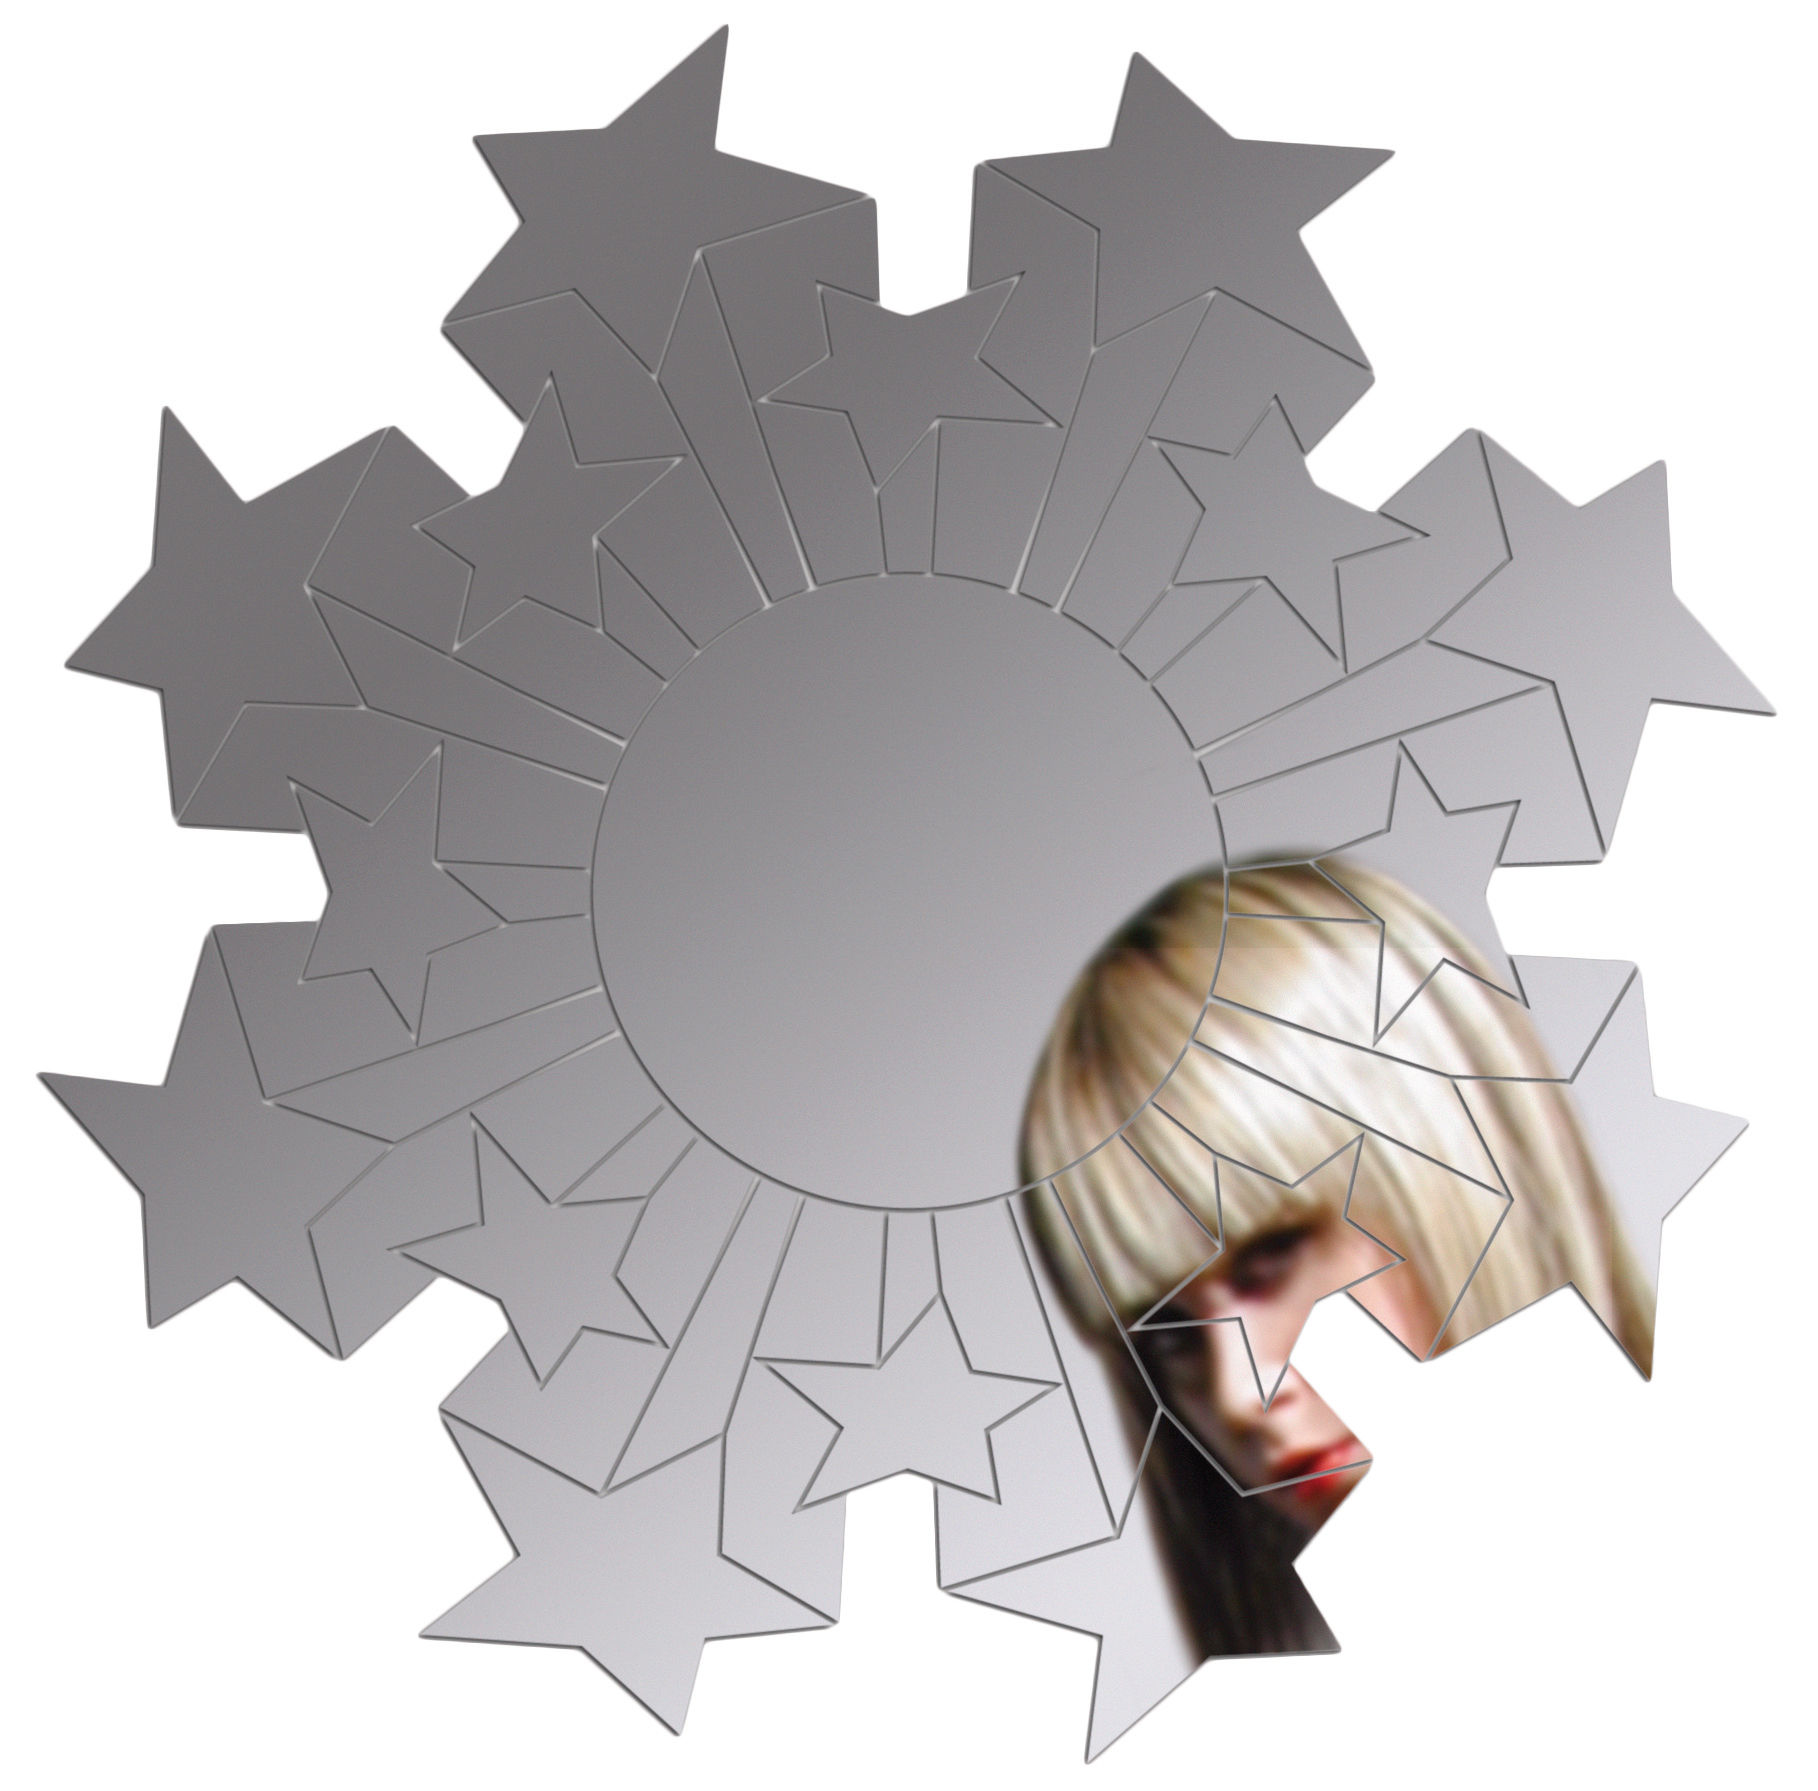 Furniture - Mirrors - Rising Star self-sticking mirror - Sticker by Domestic -  - Plastic material